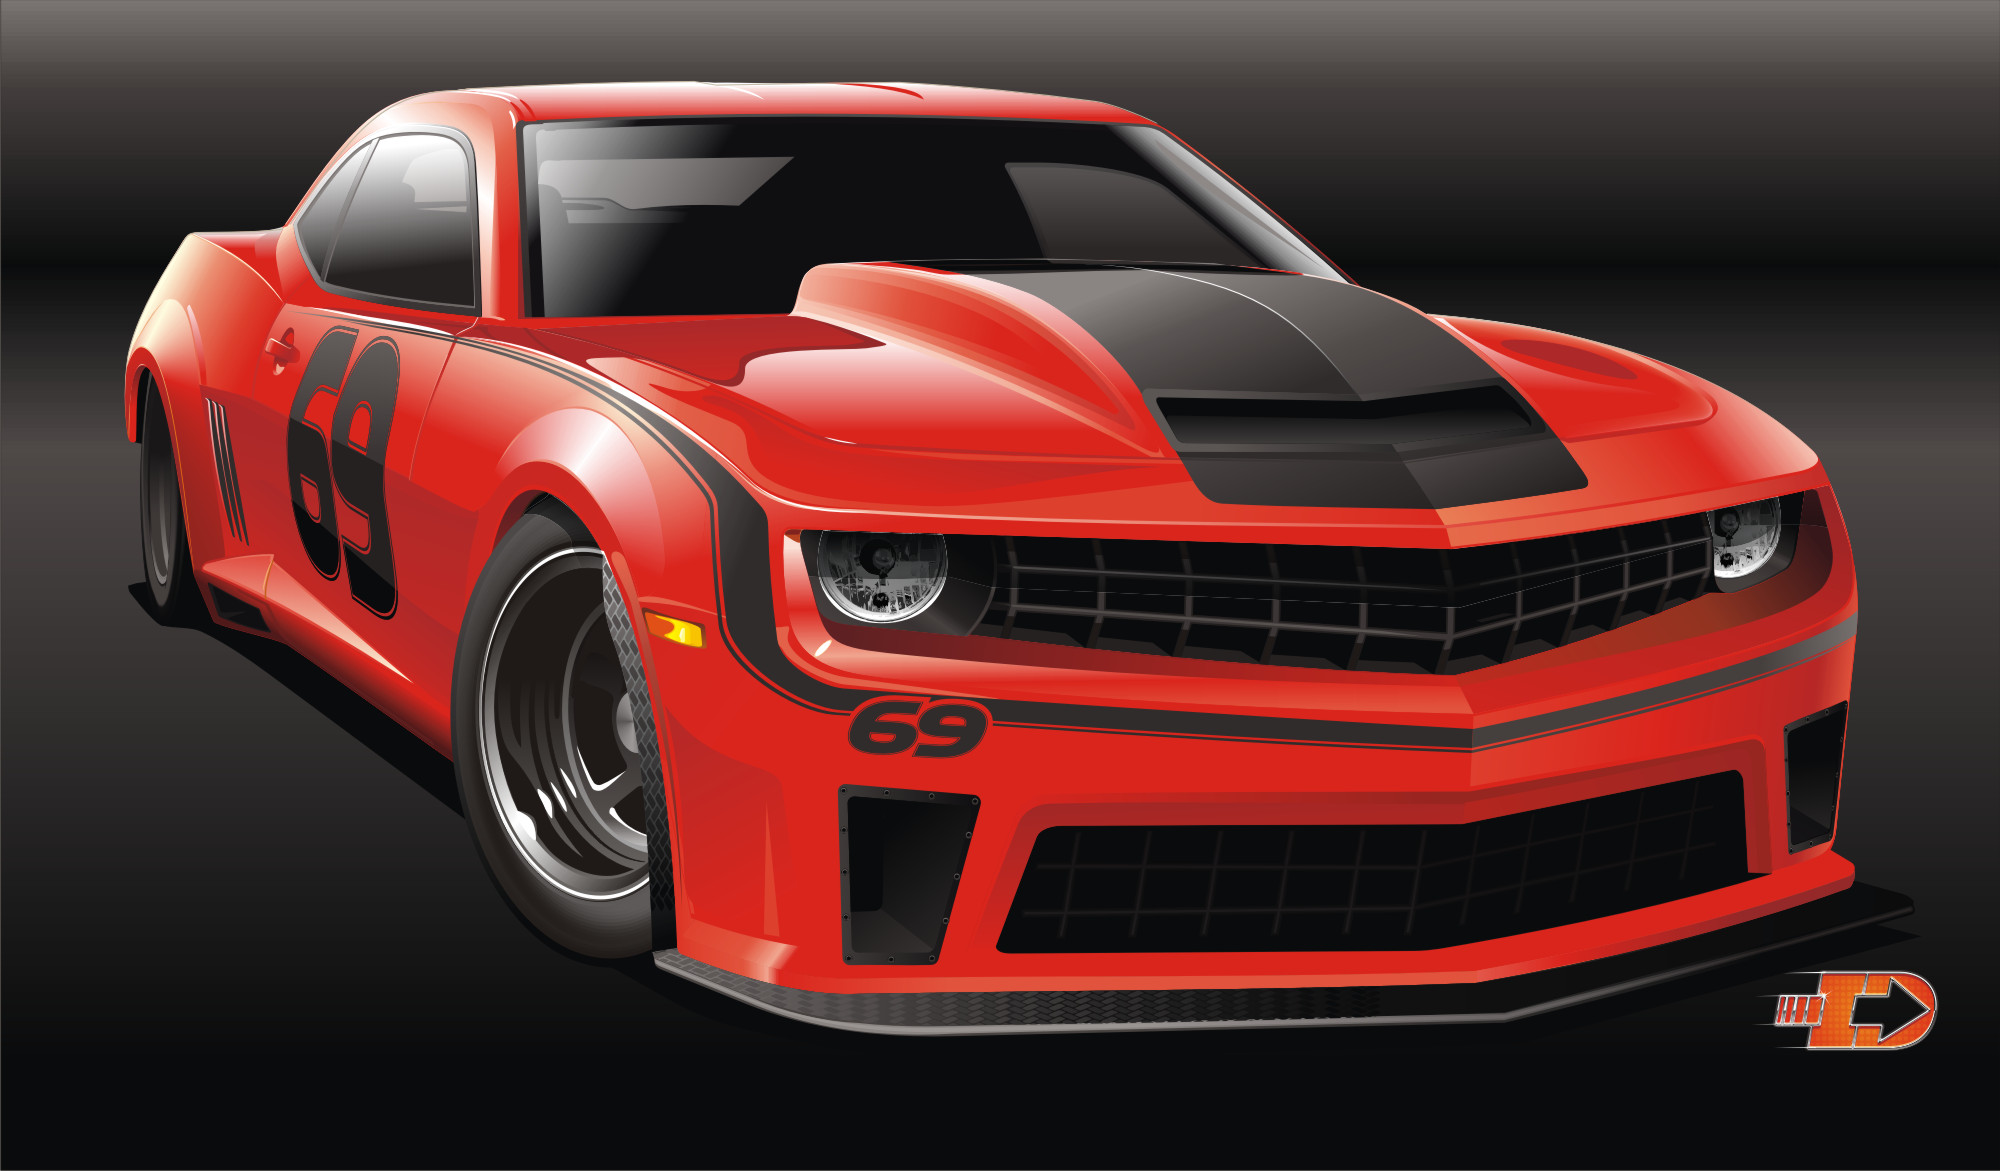 Rumored Rendering: The 2015 Camaro Z/SD – NASCAR Inspired Model Fills Hole Between Z/28 and COPO